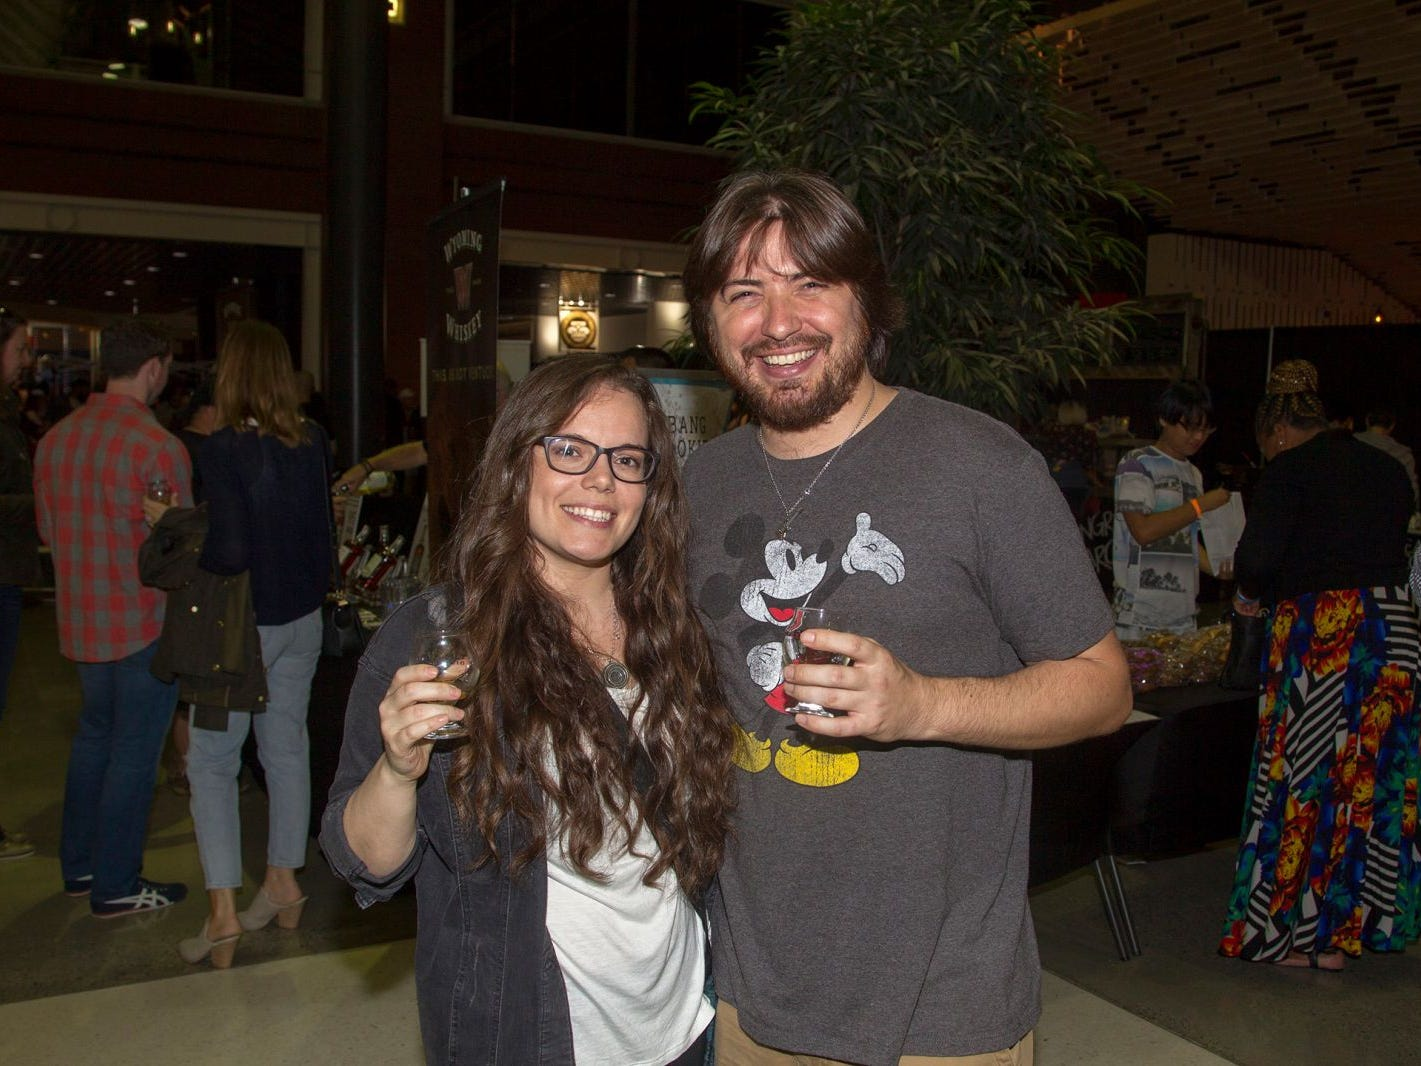 Beth and Rob. Jersey City Craft Distillery Fest at the Harborside Atrium featured more than 100 styles of spirits. Guests had the chance to taste craft-distilled spirits from moonshine, rum, cognac, whiskey, vodka, gin, tequila and more. 09/08/2018